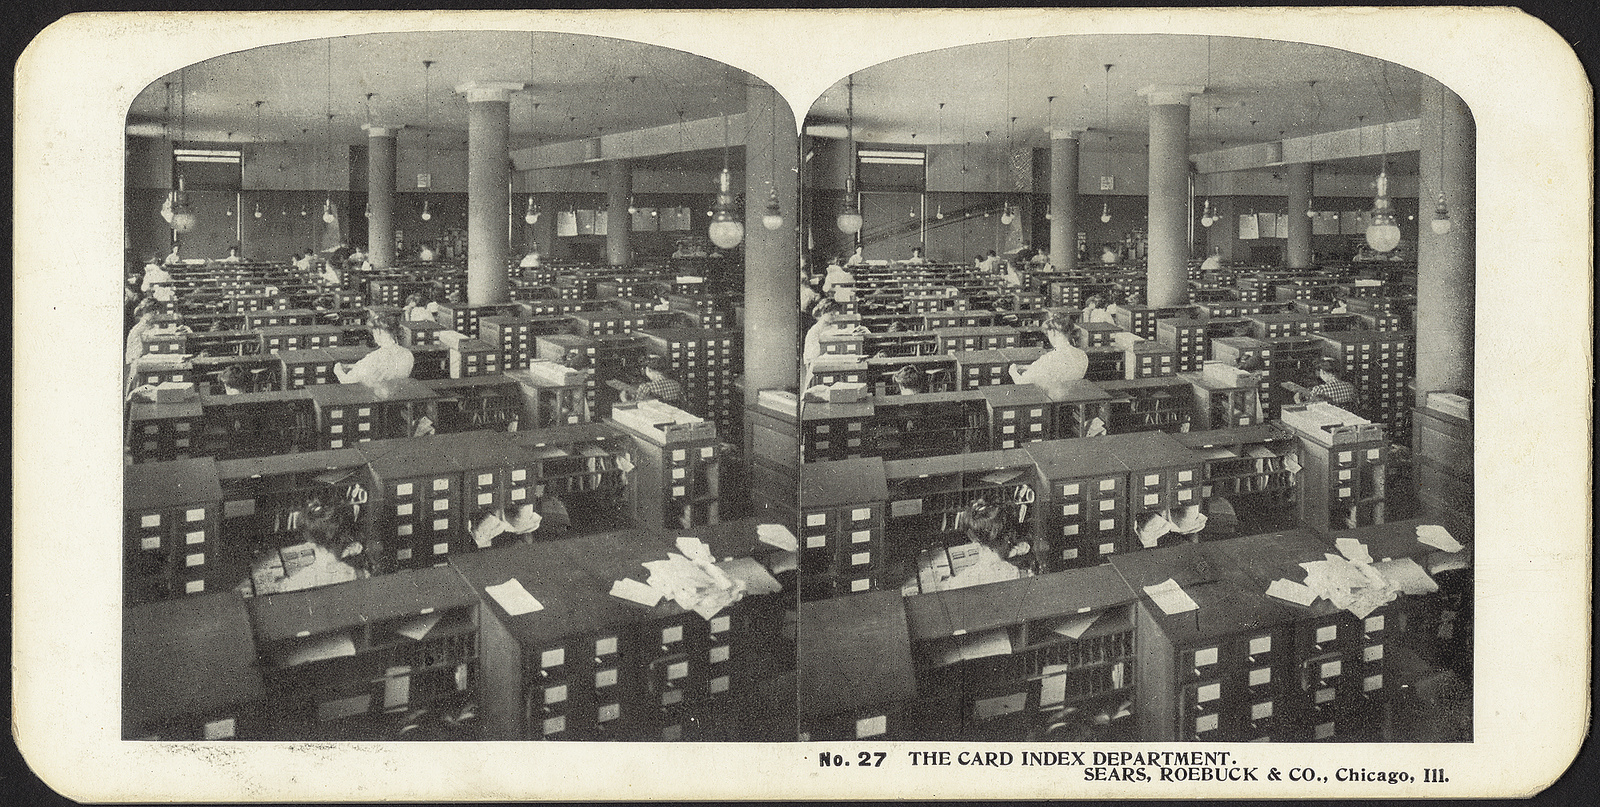 The card index department